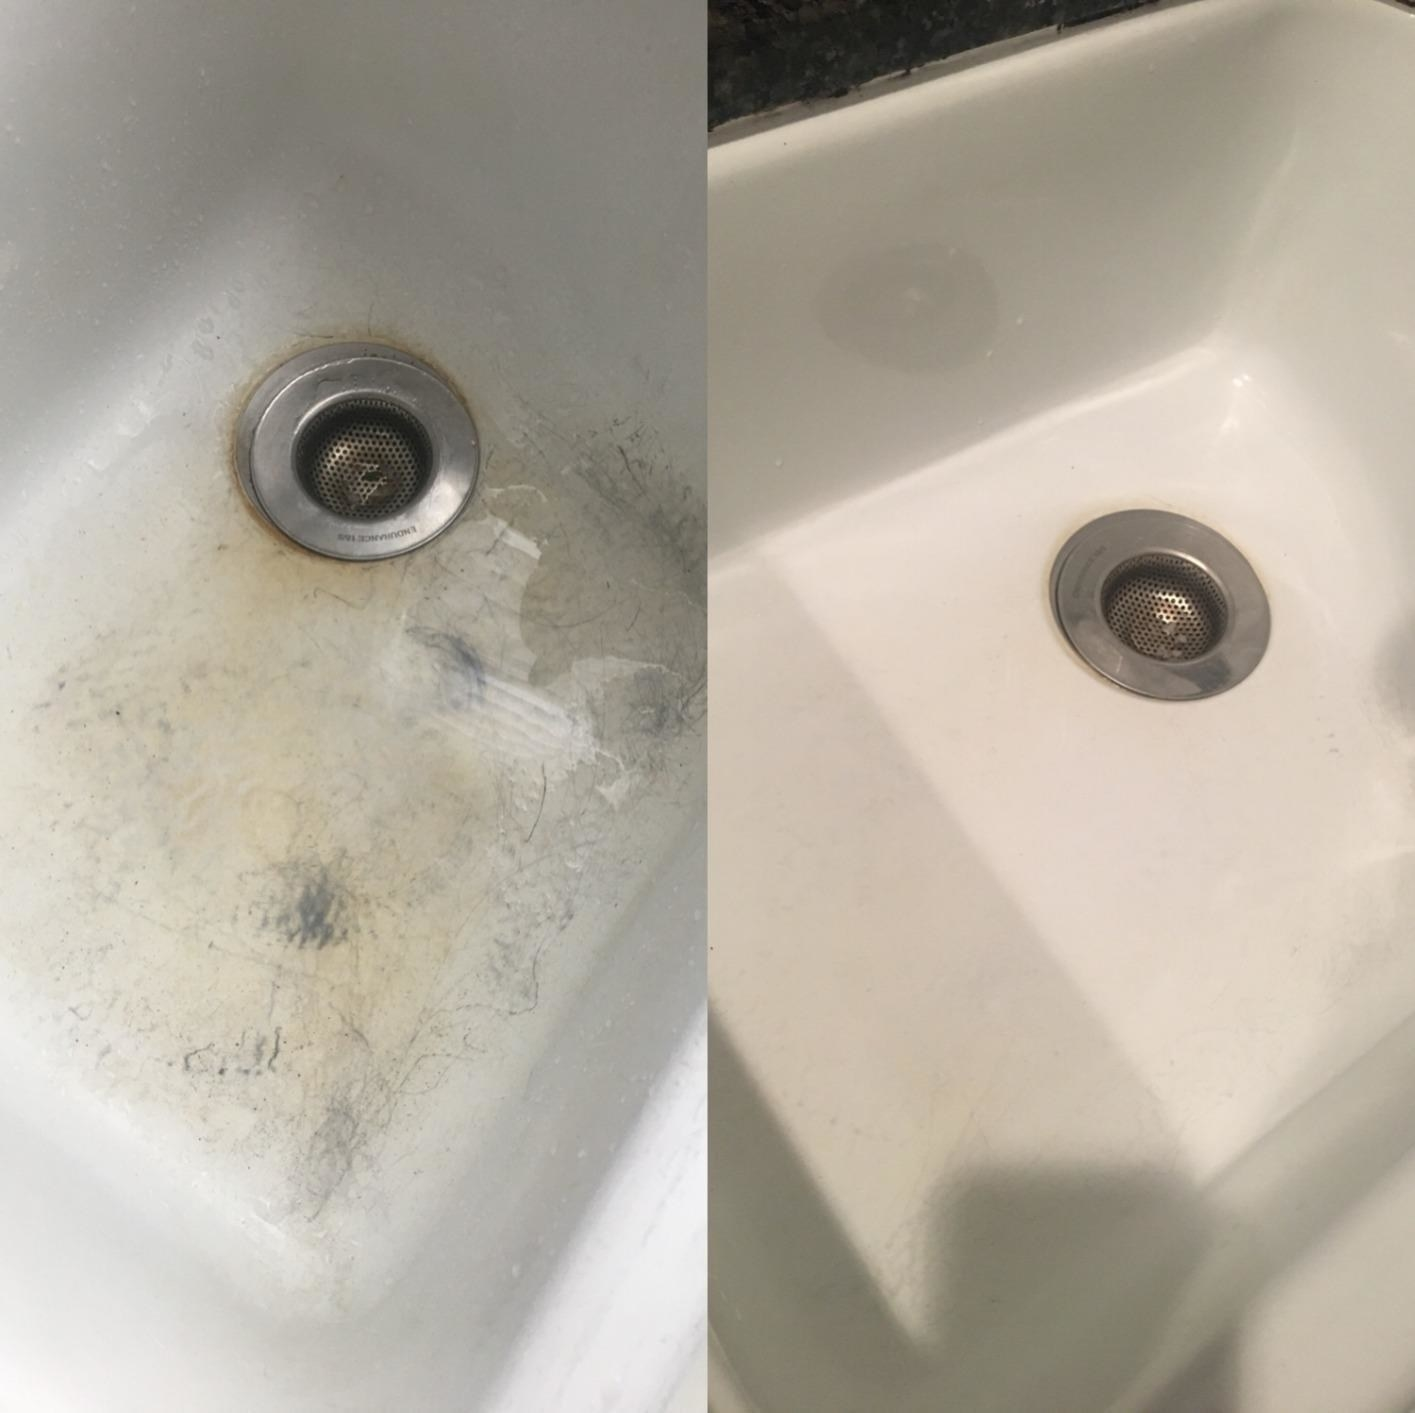 A sink before and after using the do-it-all cleaner